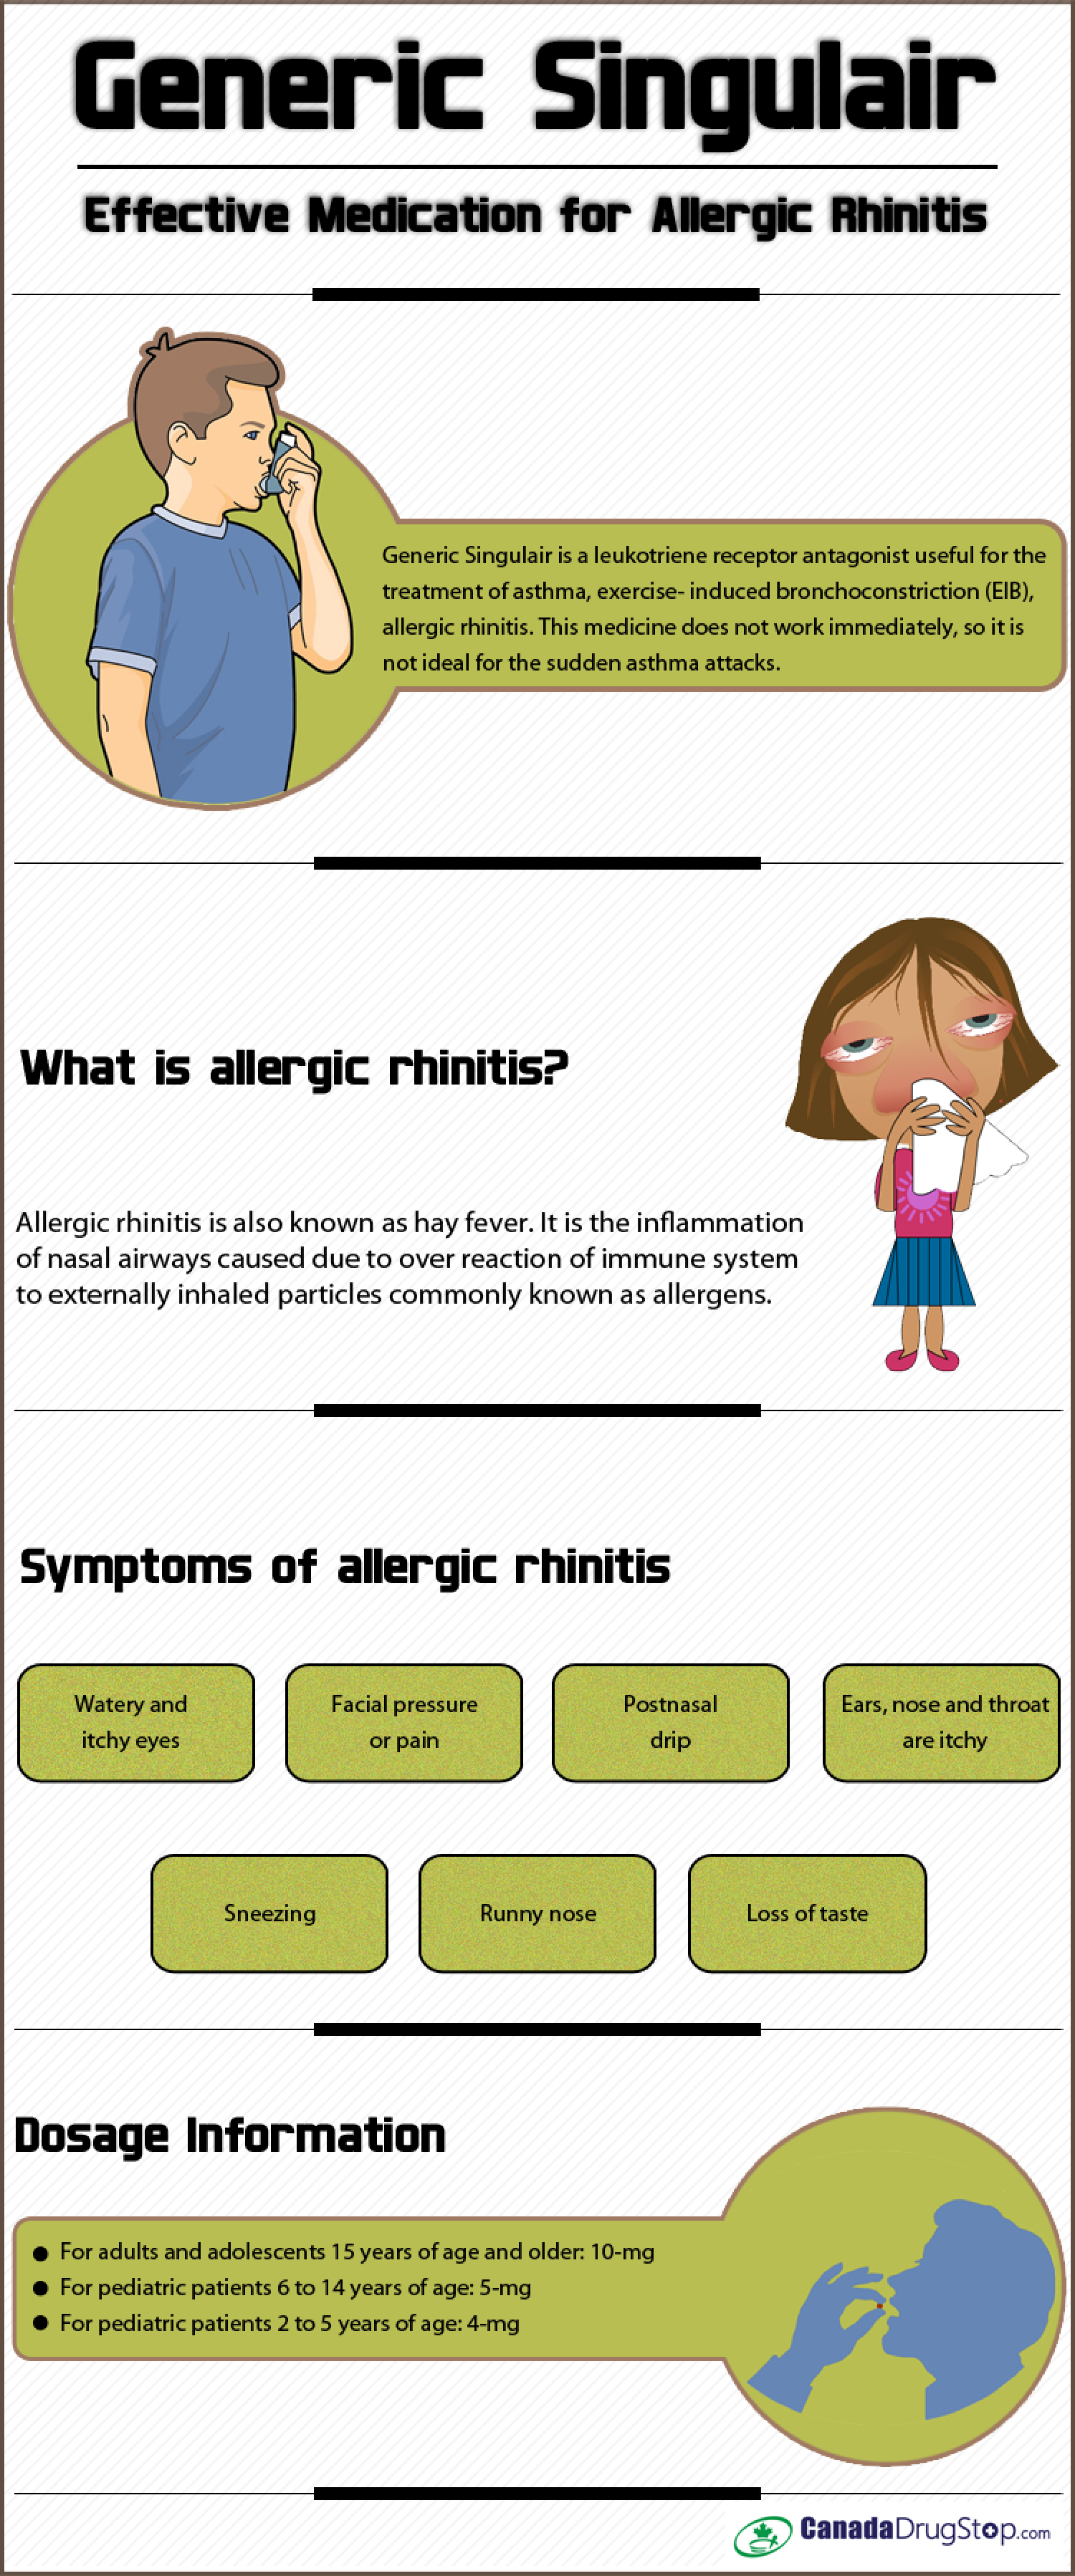 Generic Singulair – Effective Medication for Allergic Rhinitis Infographic